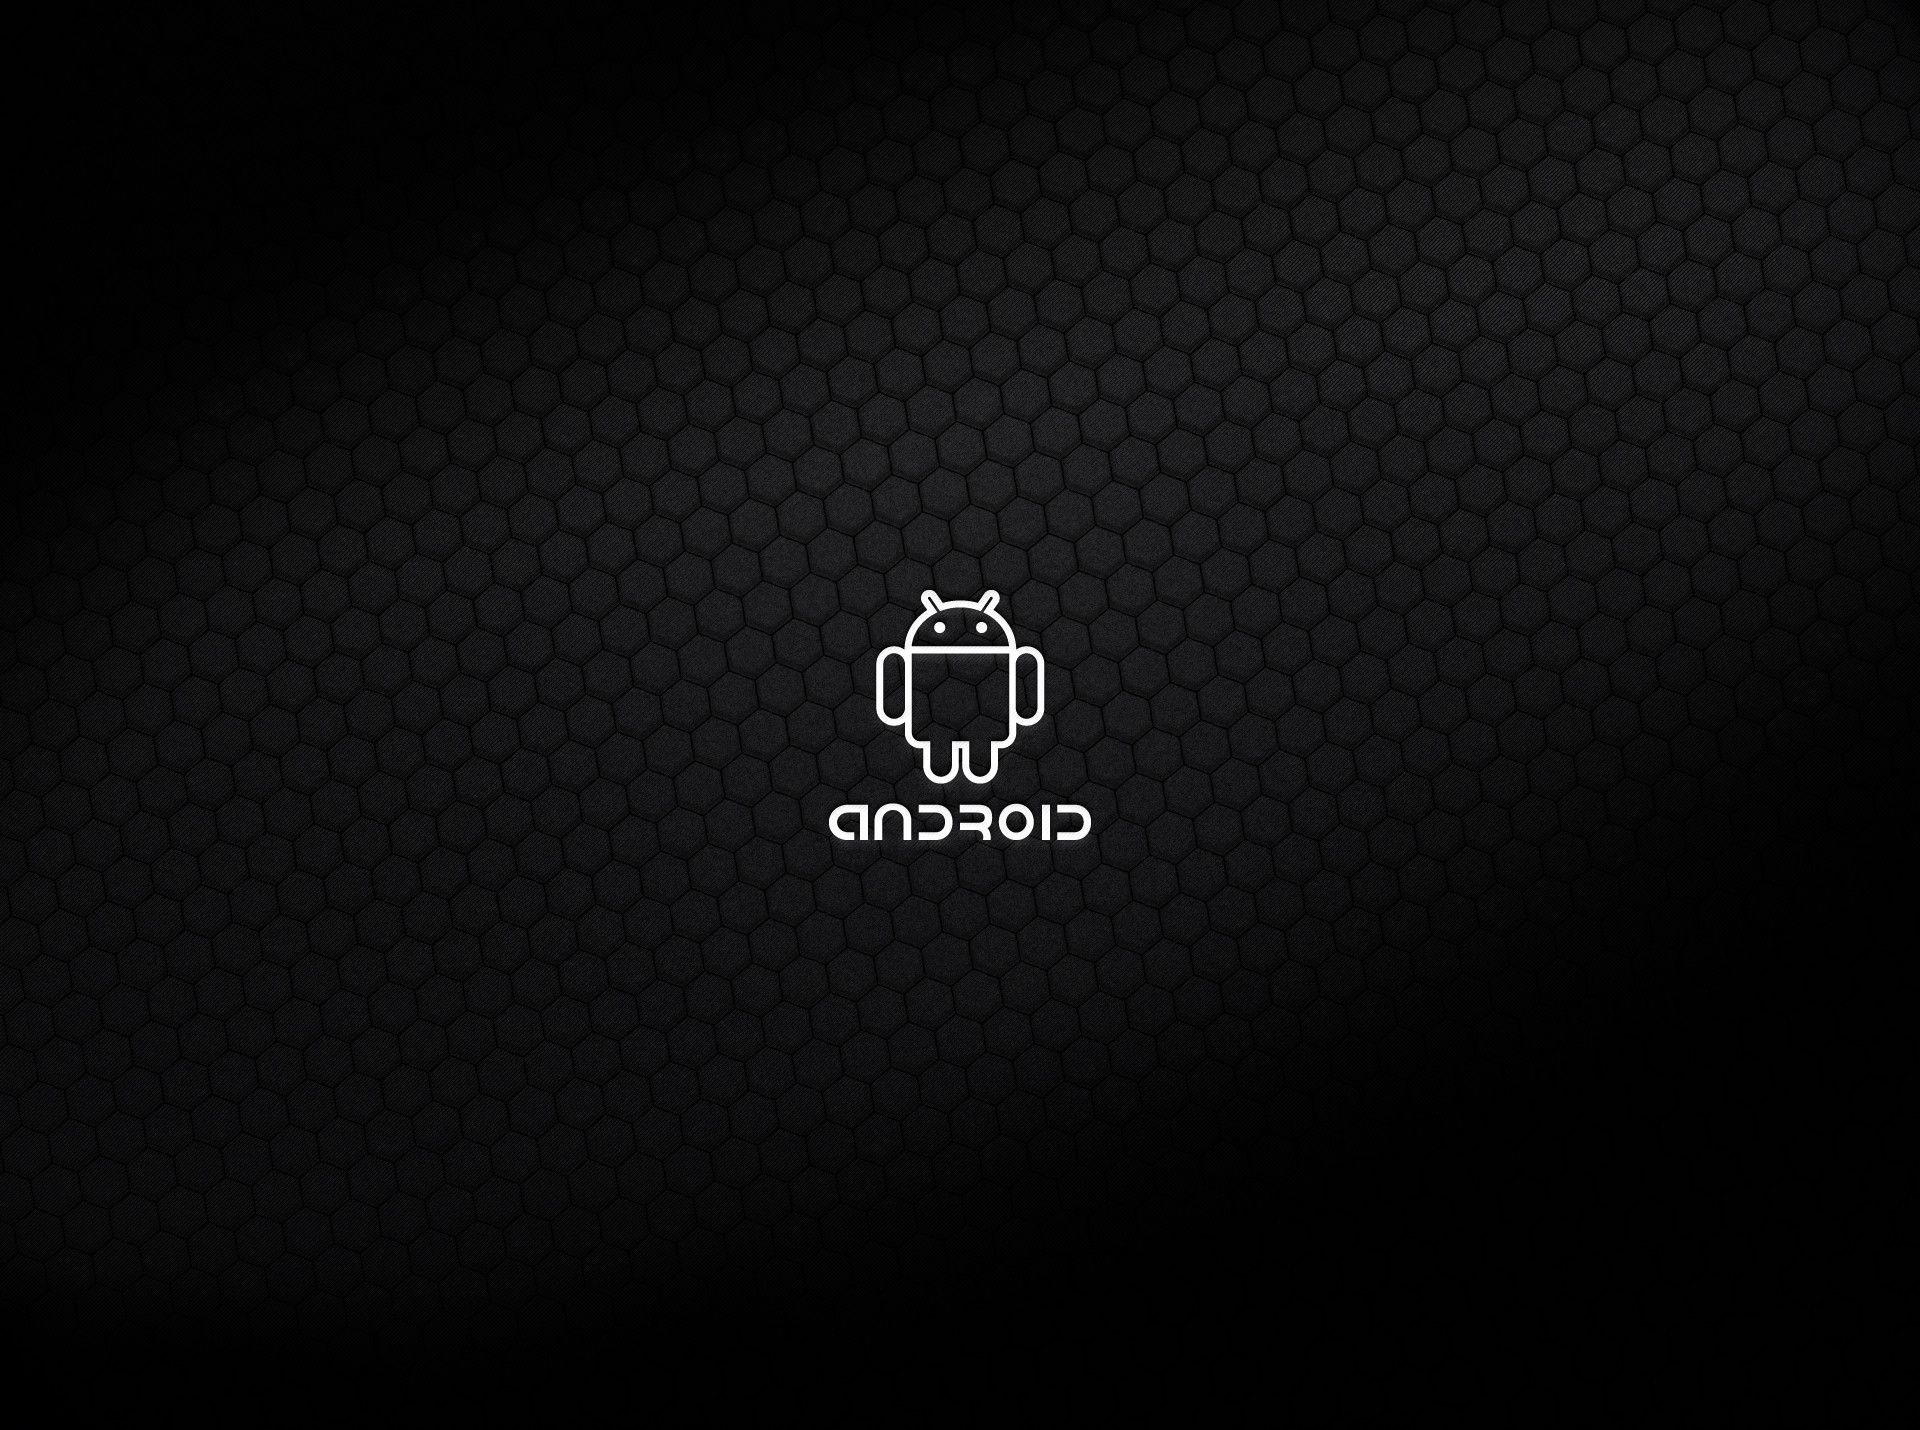 Black Background Wallpaper Android